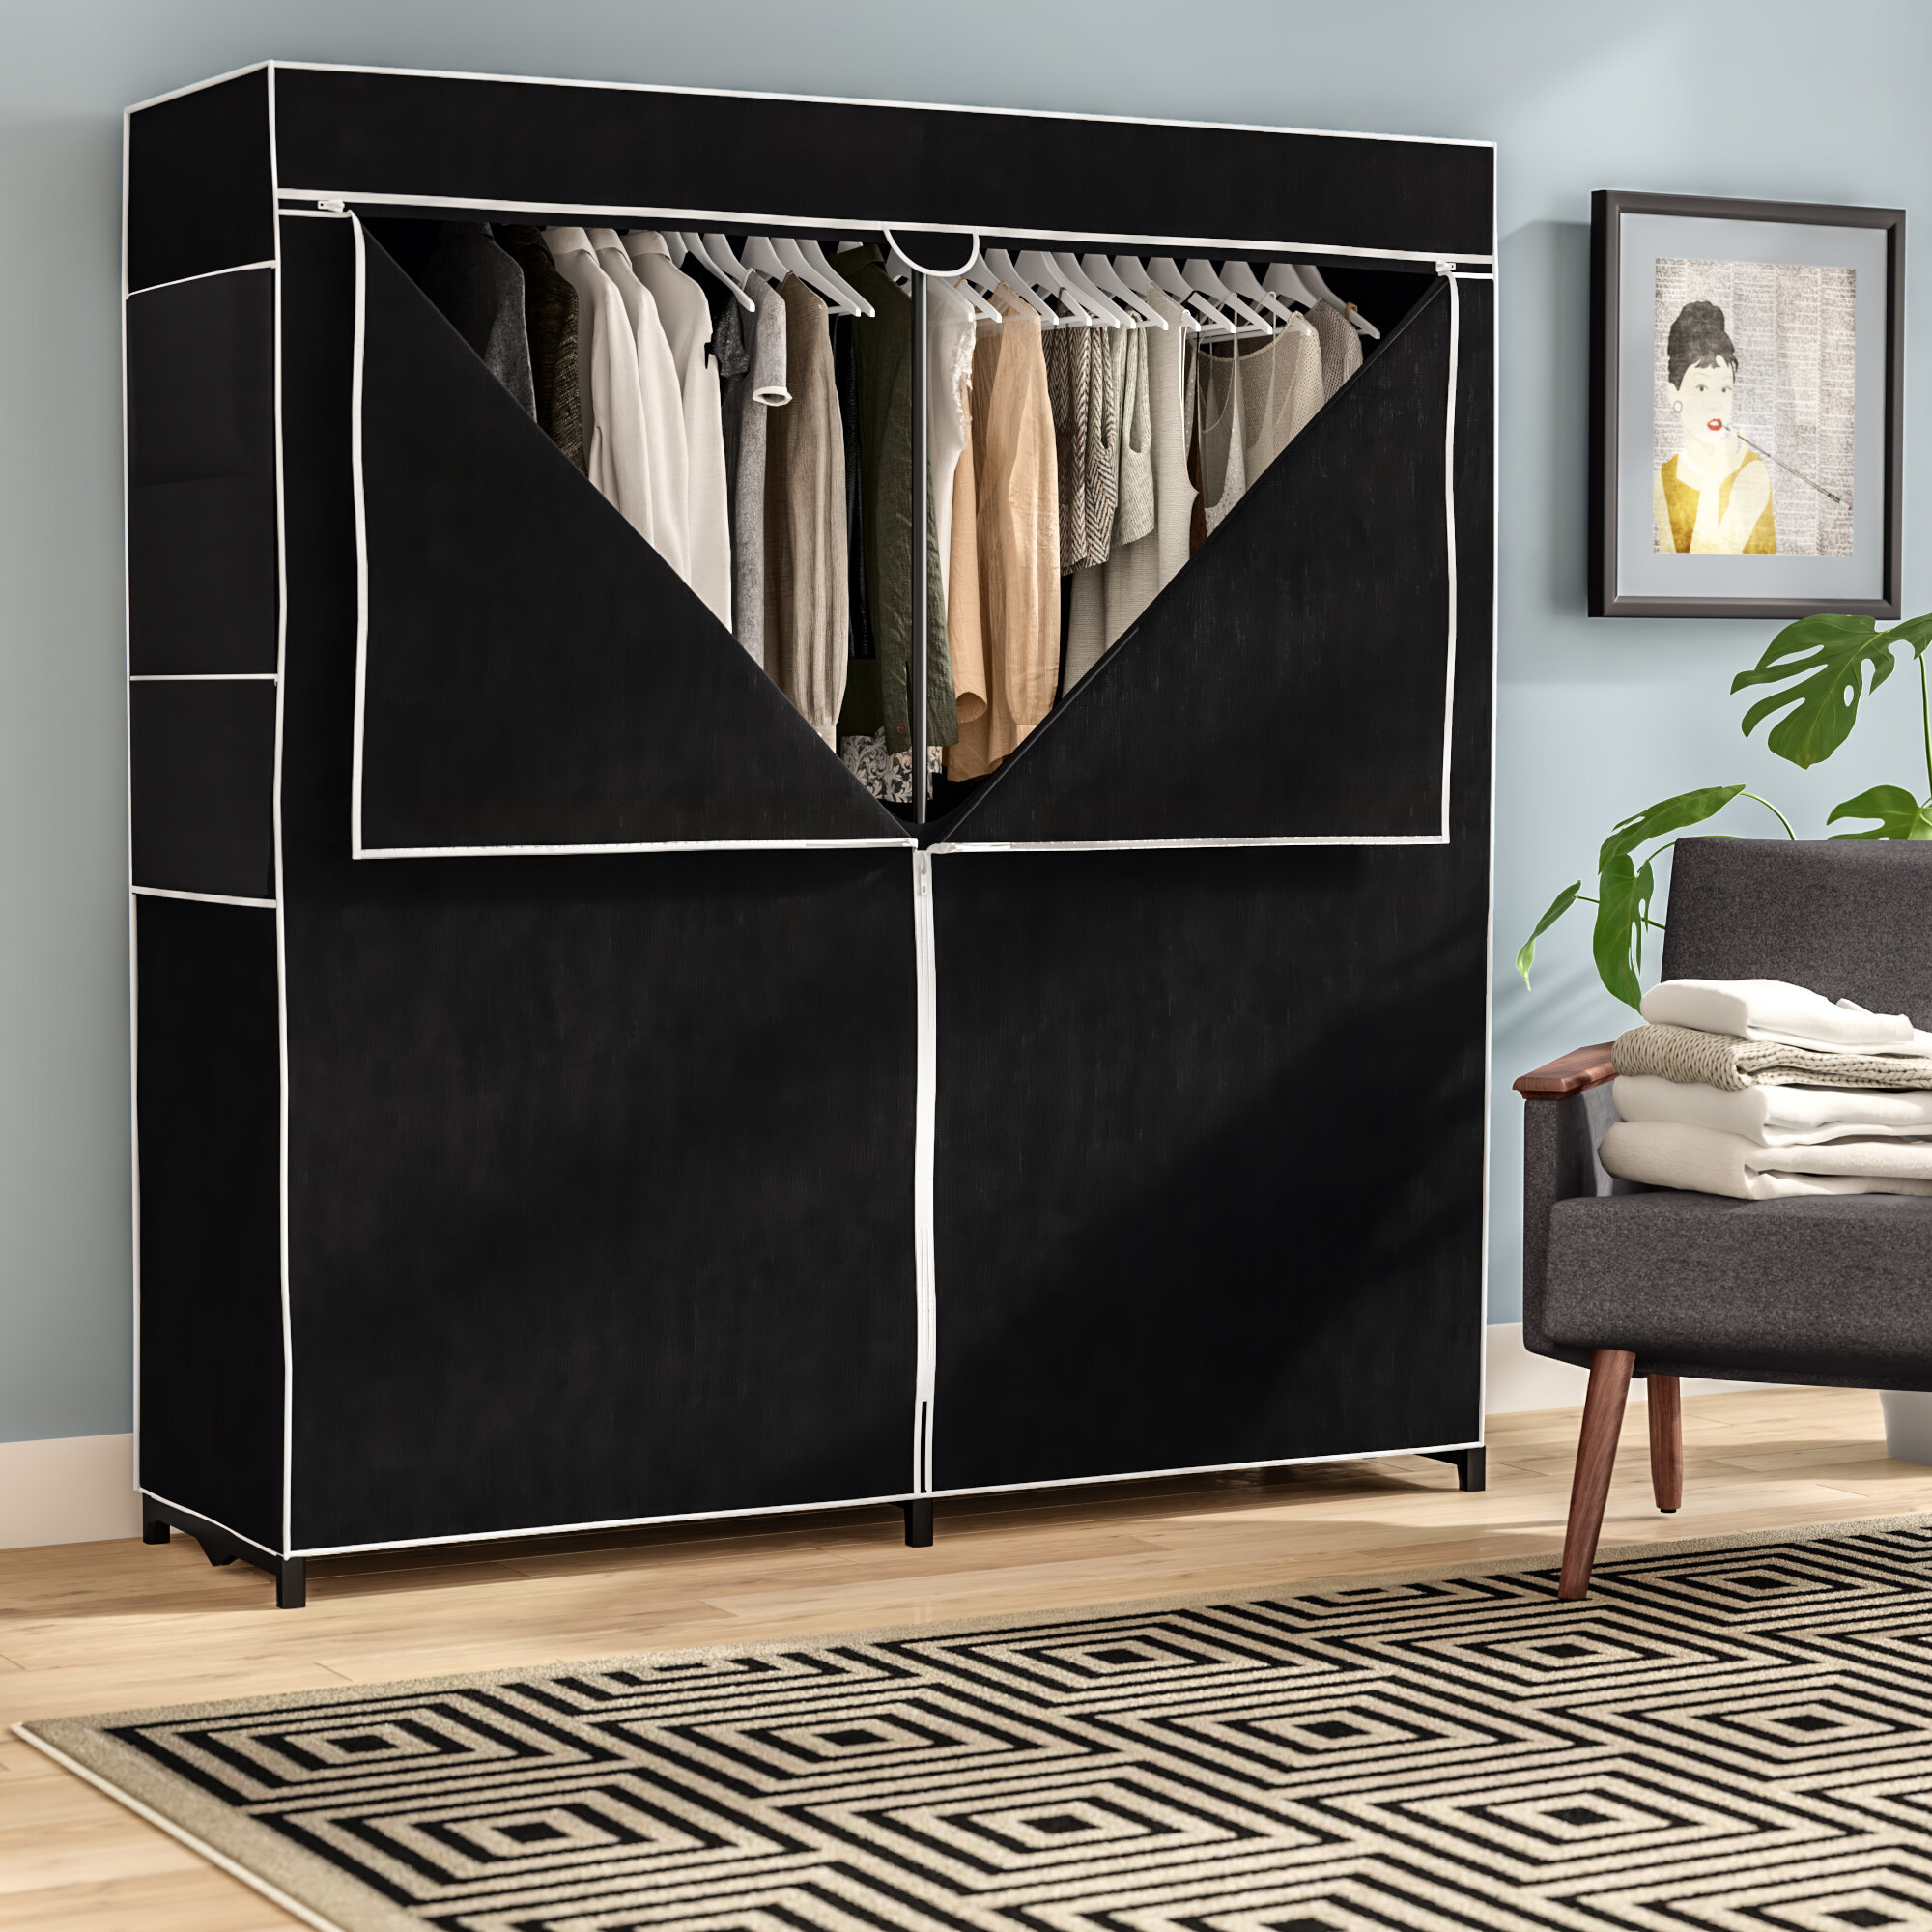 heavy storage photo organizer duty closet wardrobe of clothes portable x charming clothing rack